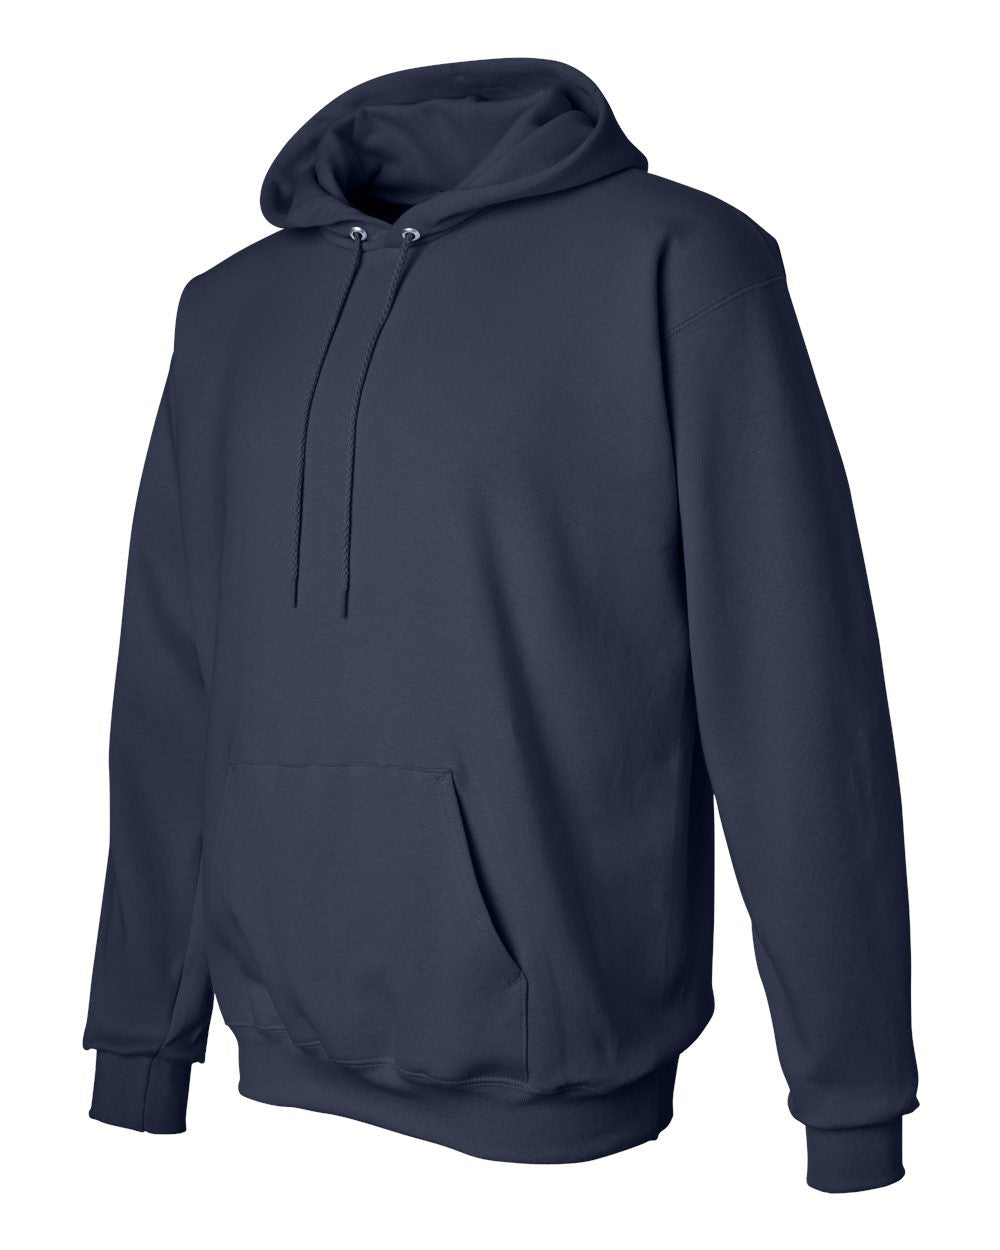 Heavyweight Cotton Hooded Sweatshirt by Hanes